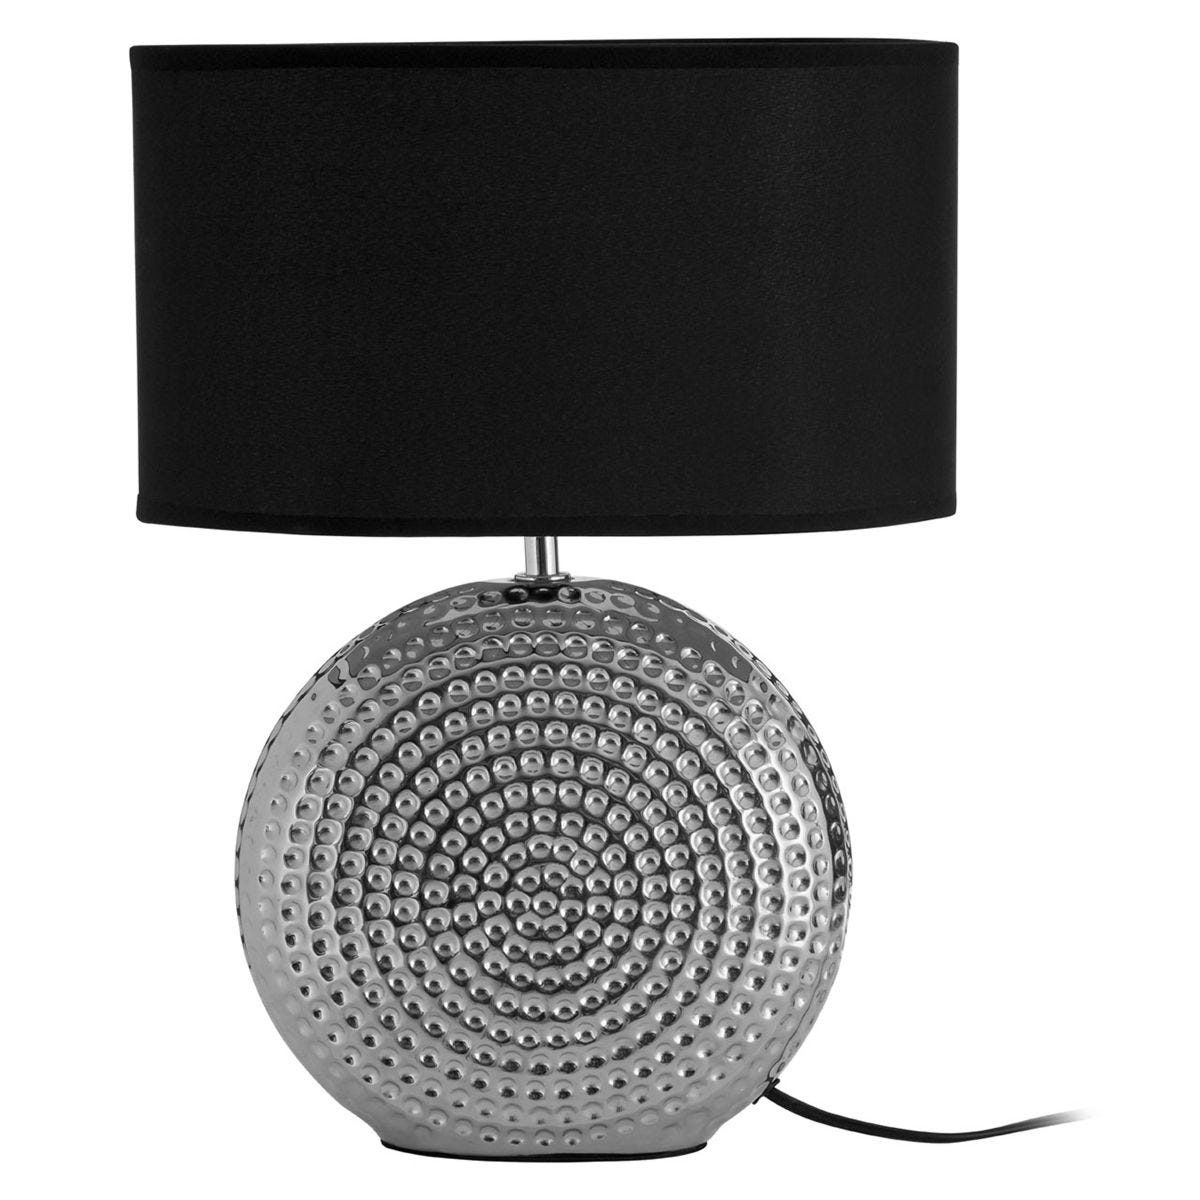 Premier Housewares Large Table Lamp with Hammered Chrome Finish